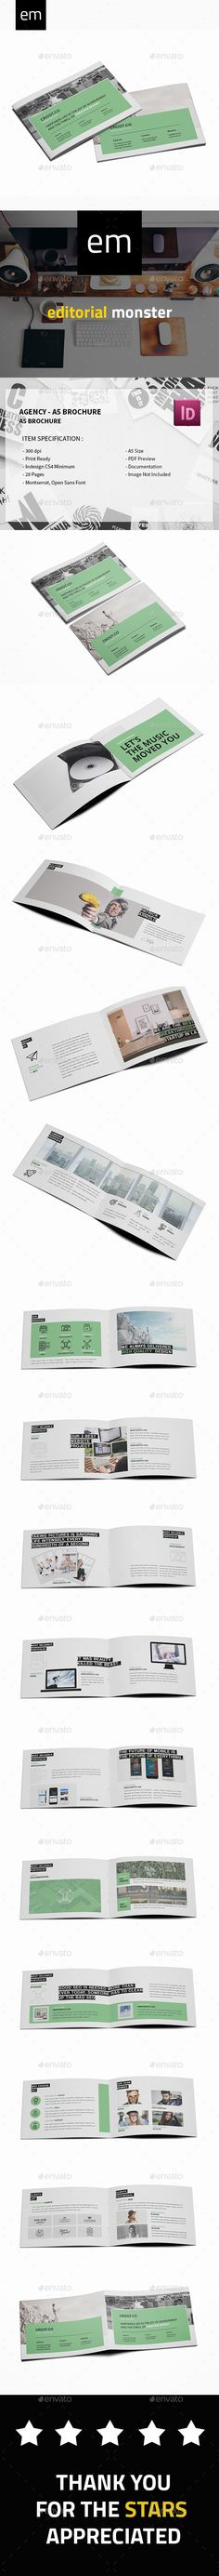 Agency A5 Brochure — InDesign INDD #business #element • Available here → https://graphicriver.net/item/agency-a5-brochure/20441971?ref=pxcr